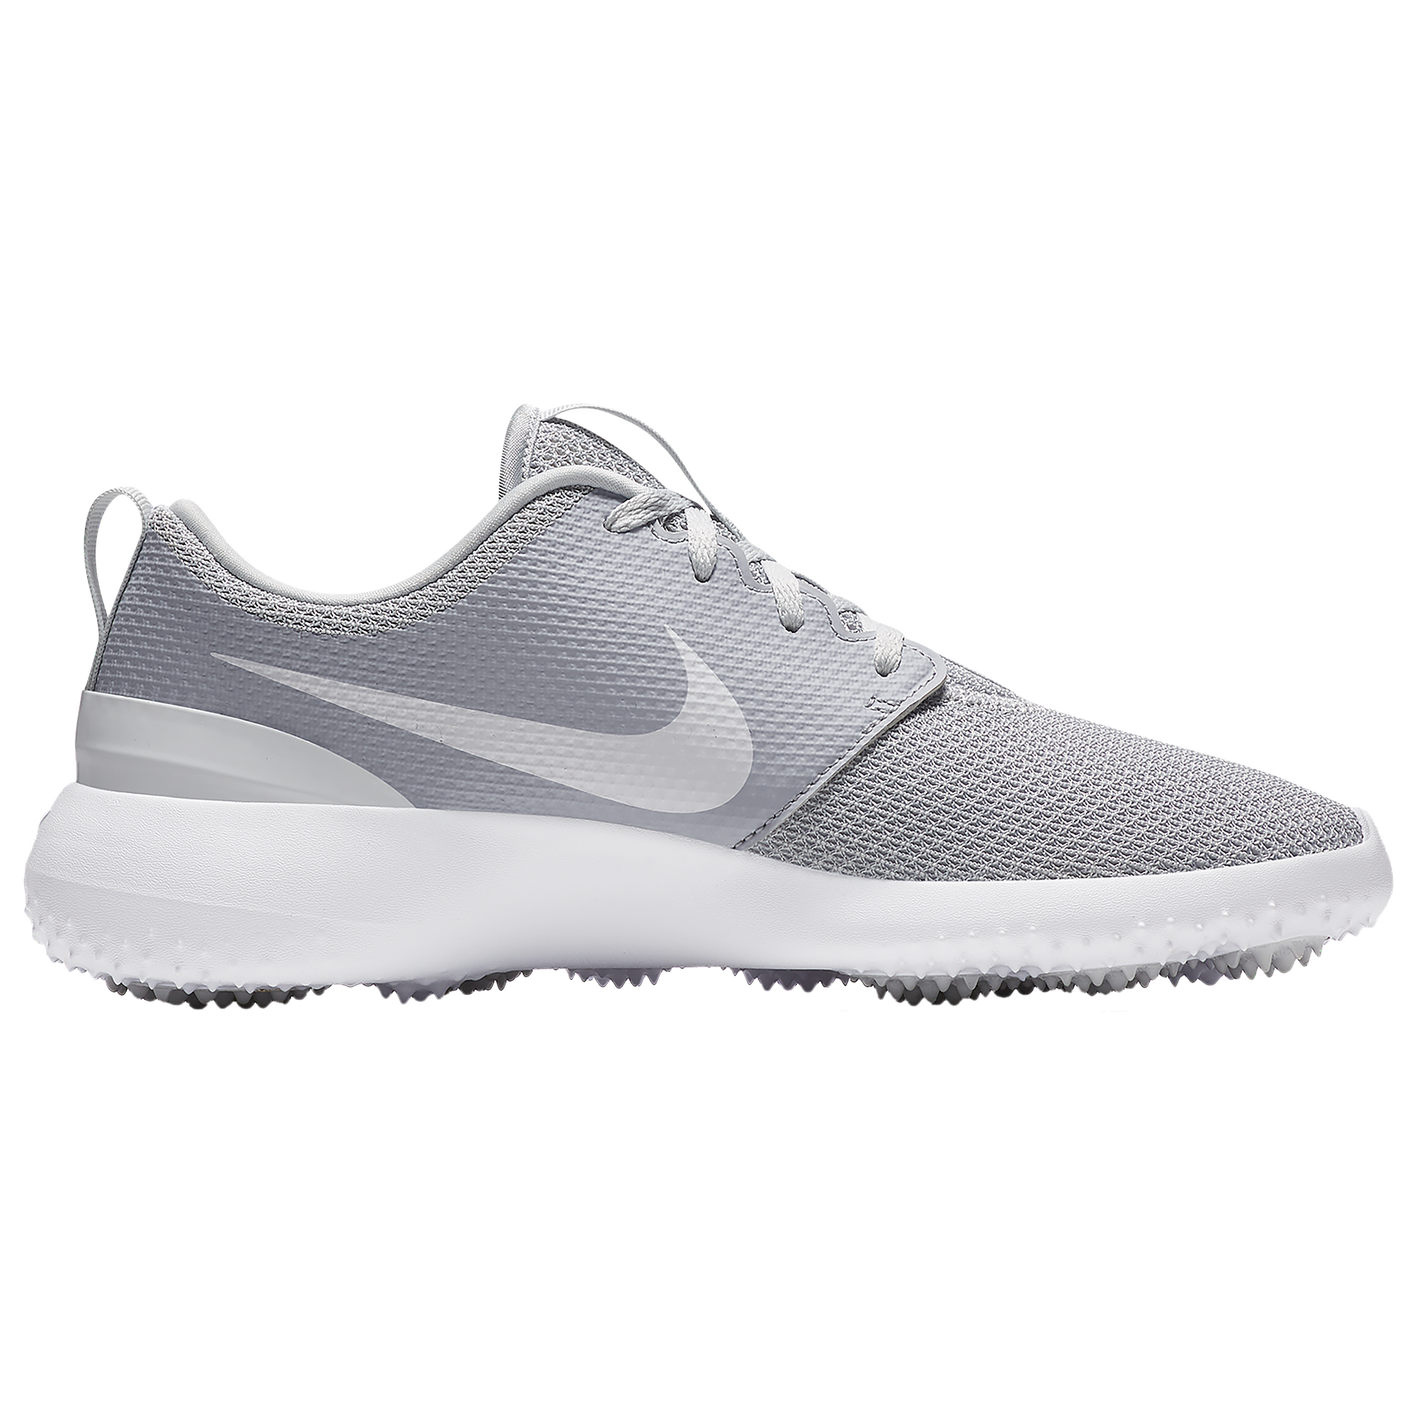 4288a171df940 Nike Roshe G Golf Shoes - Men s - Golf - Shoes - Pure Platinum White